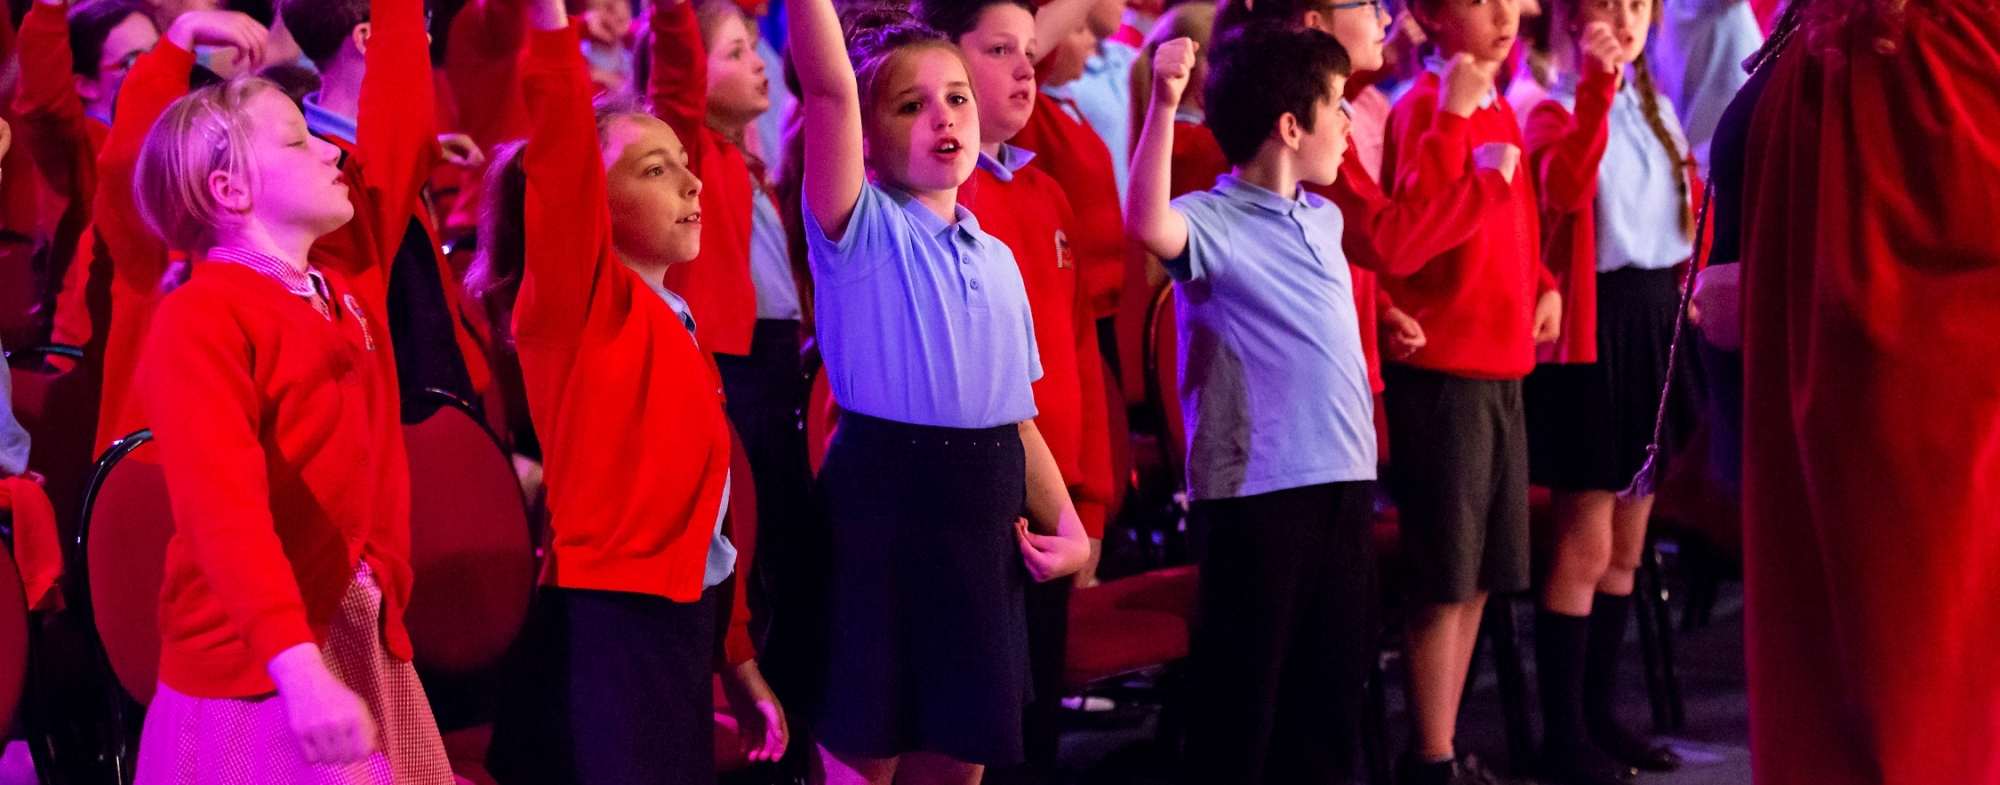 A large group of Primary School children in red and blue uniforms sing, some with arms in the air. Black box rehearsal room setting.